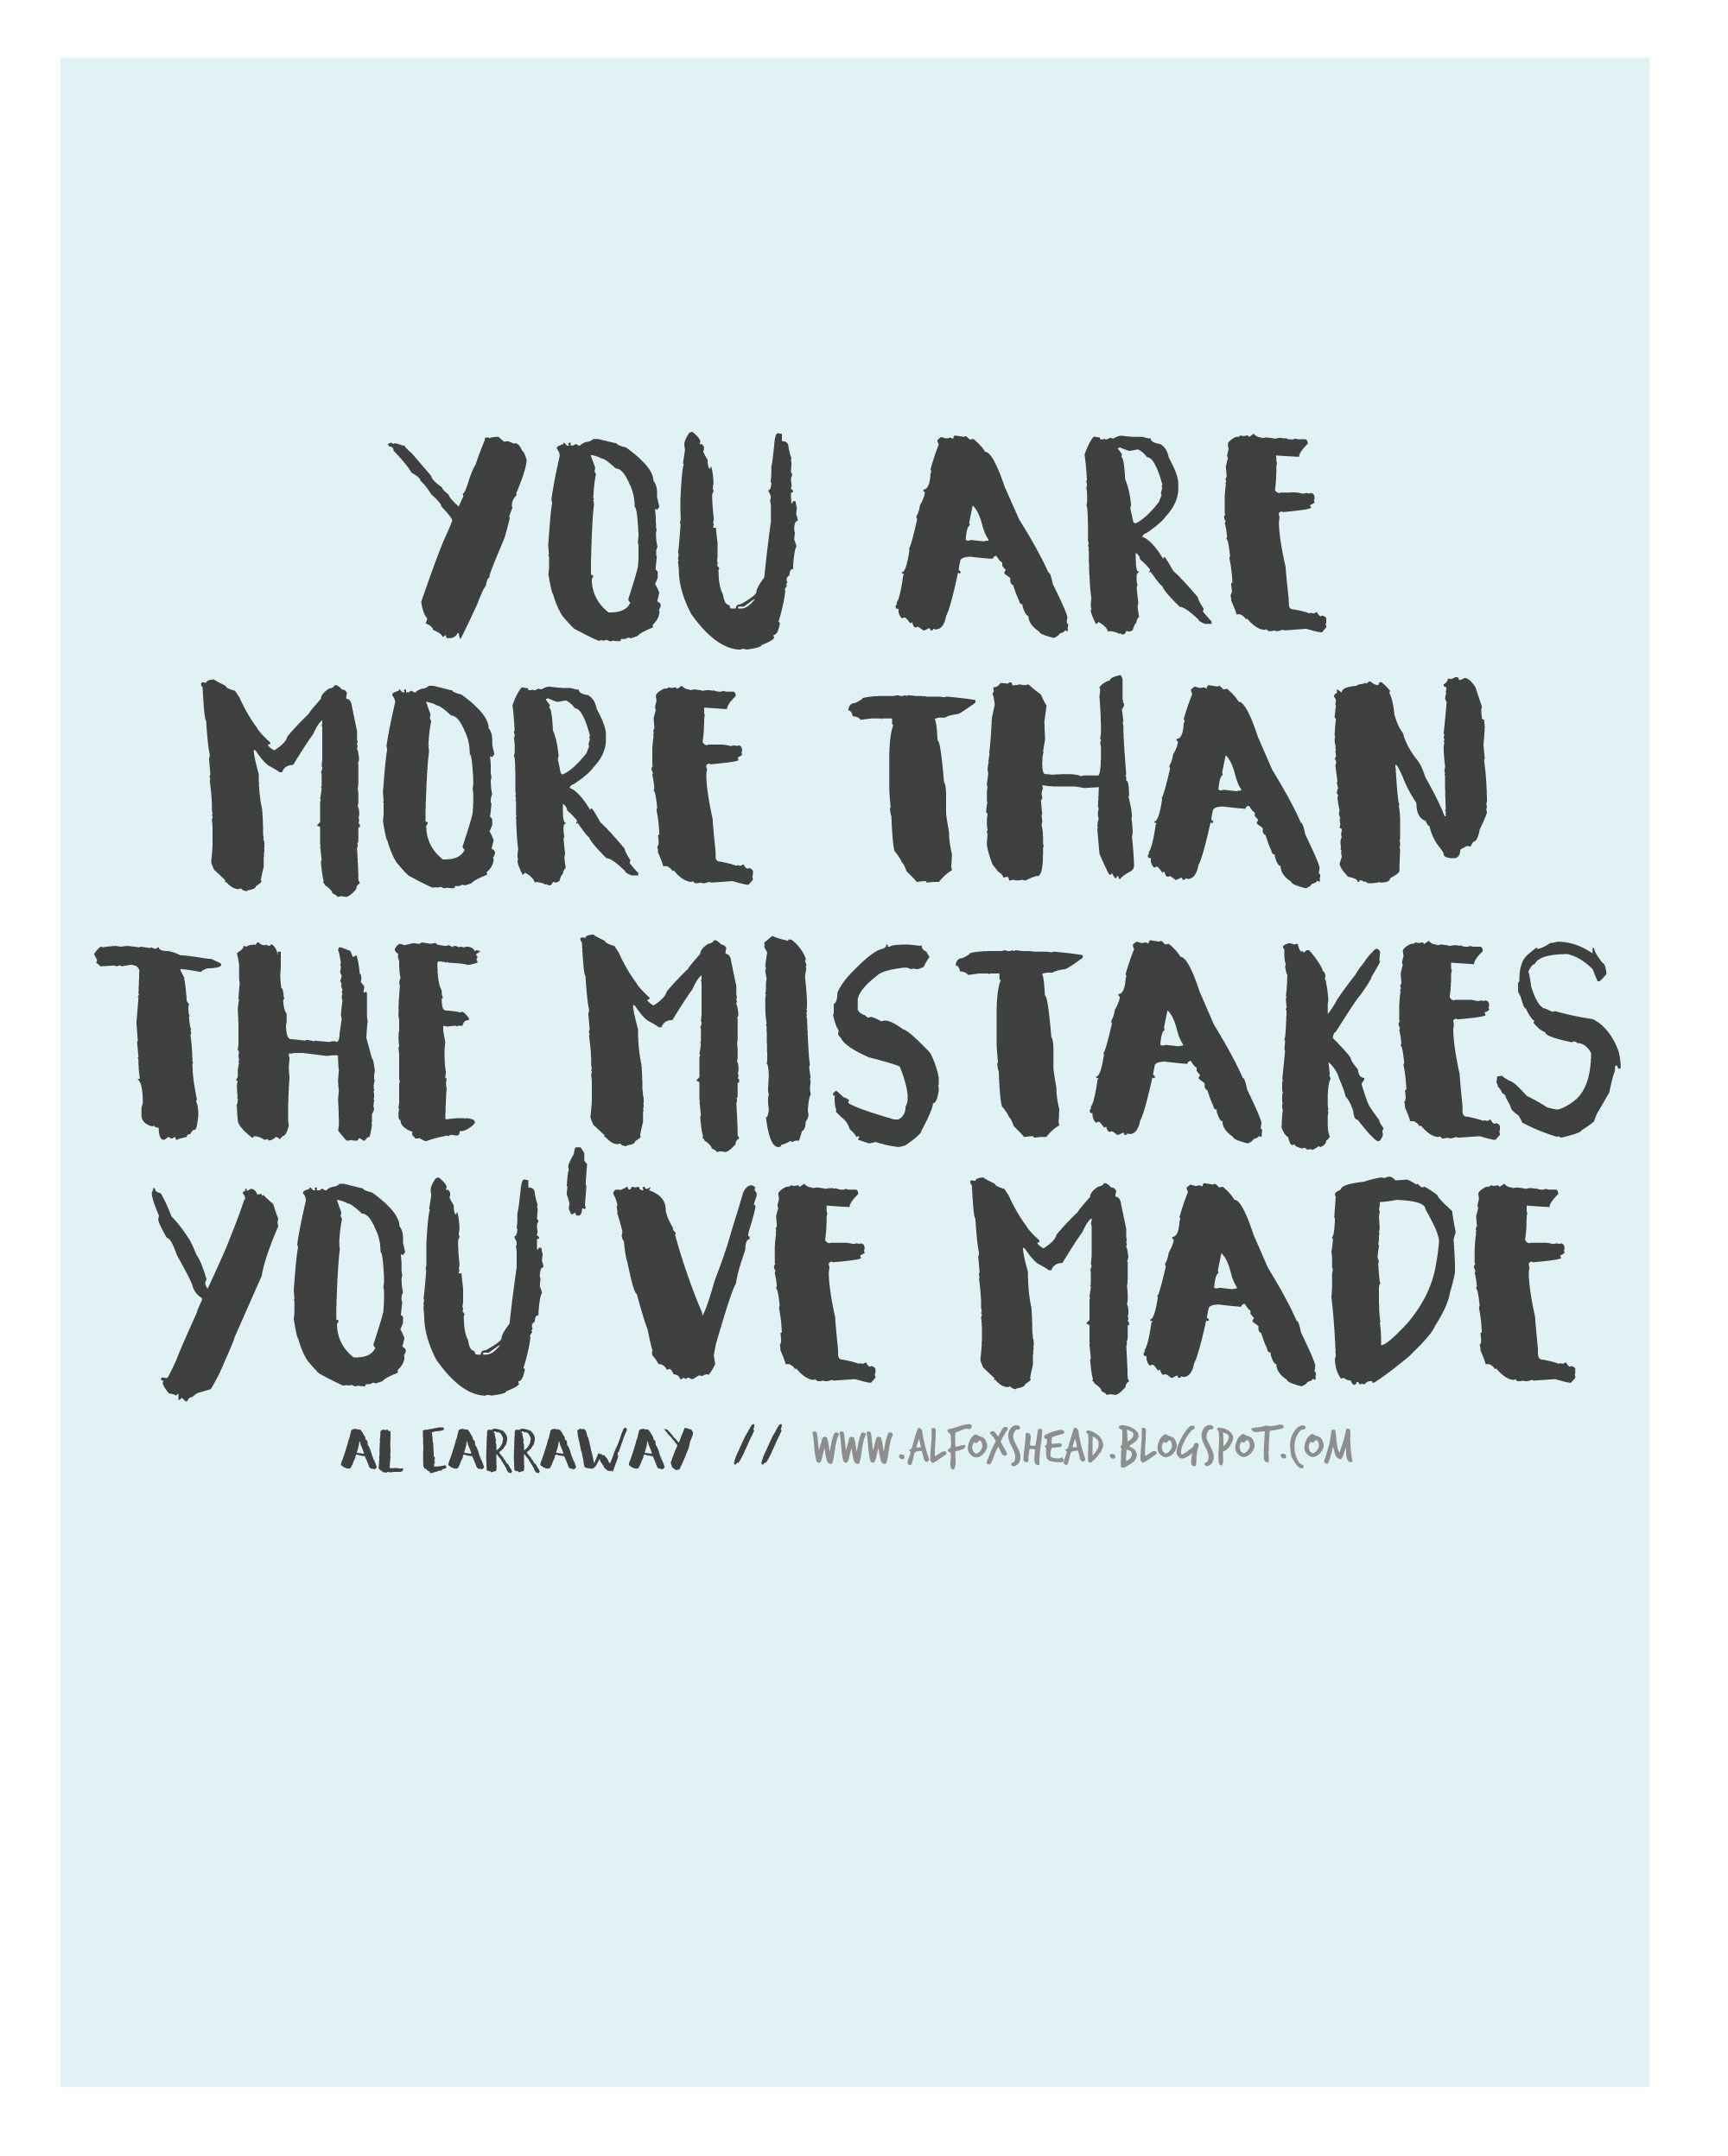 You Are More Than The Mistakes You've Made! // Al Carraway